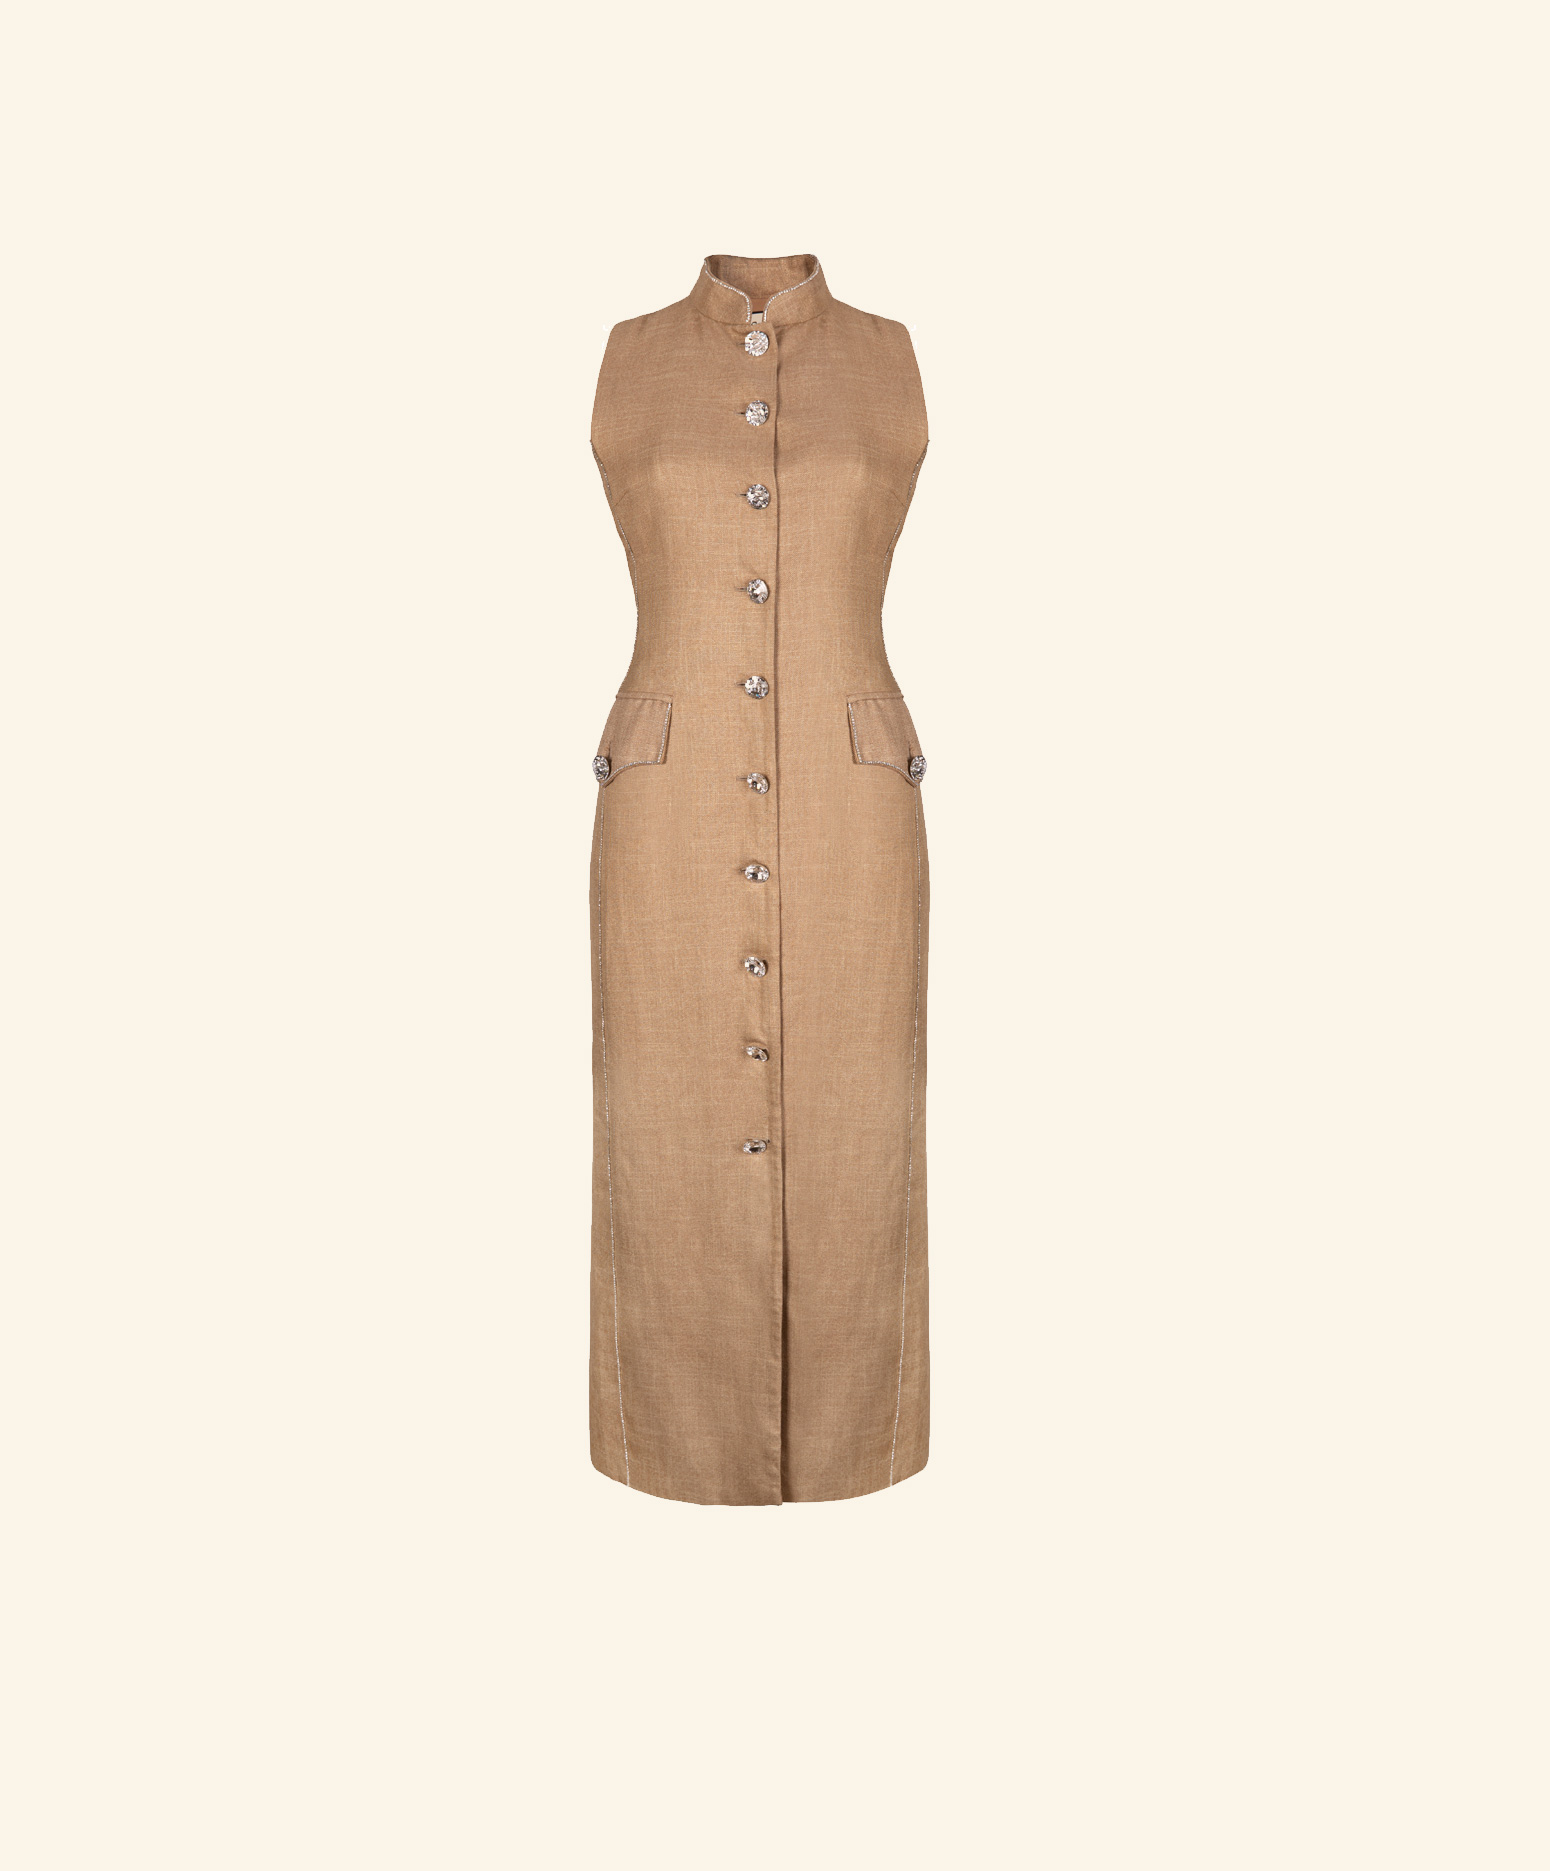 buttoned-up-bamboo-dress-front